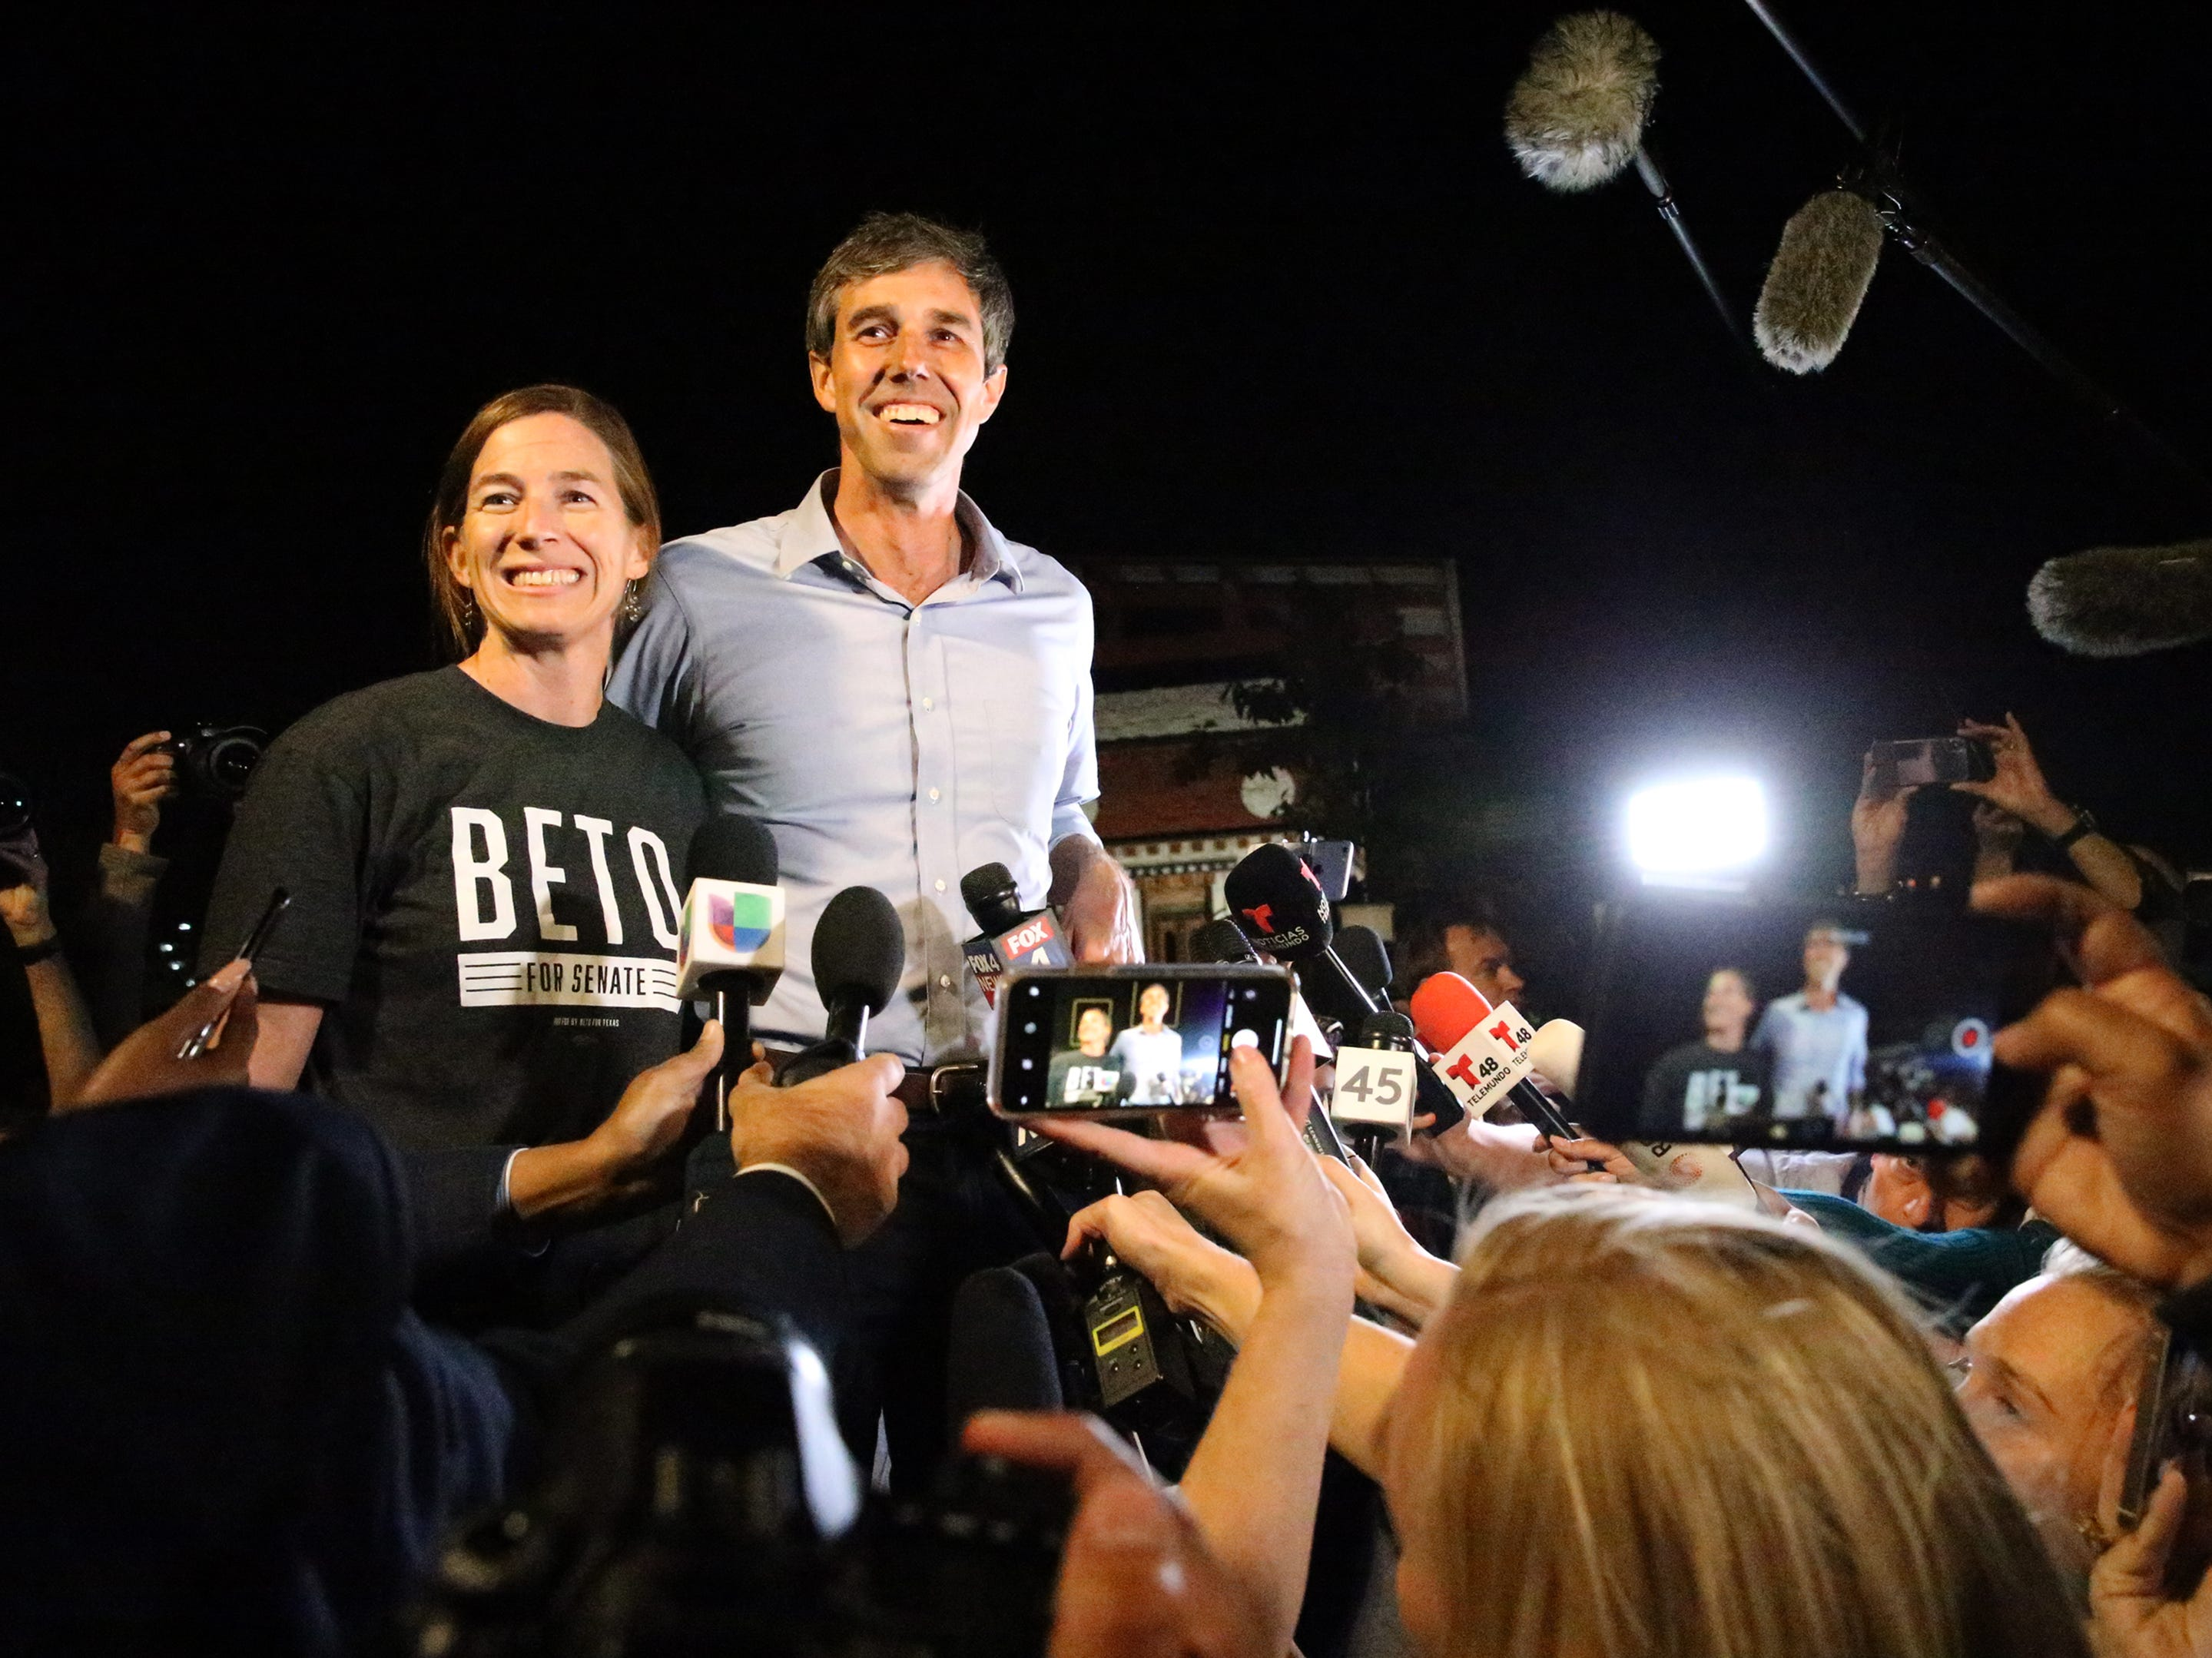 Democratic U.S. Senate Candidate Beto O'Rourke and his wife Amy speak to the media upon their arrival to Magoffin Auditorium Monday night for his final campaign rally ahead of Tuesday's midterm elections.